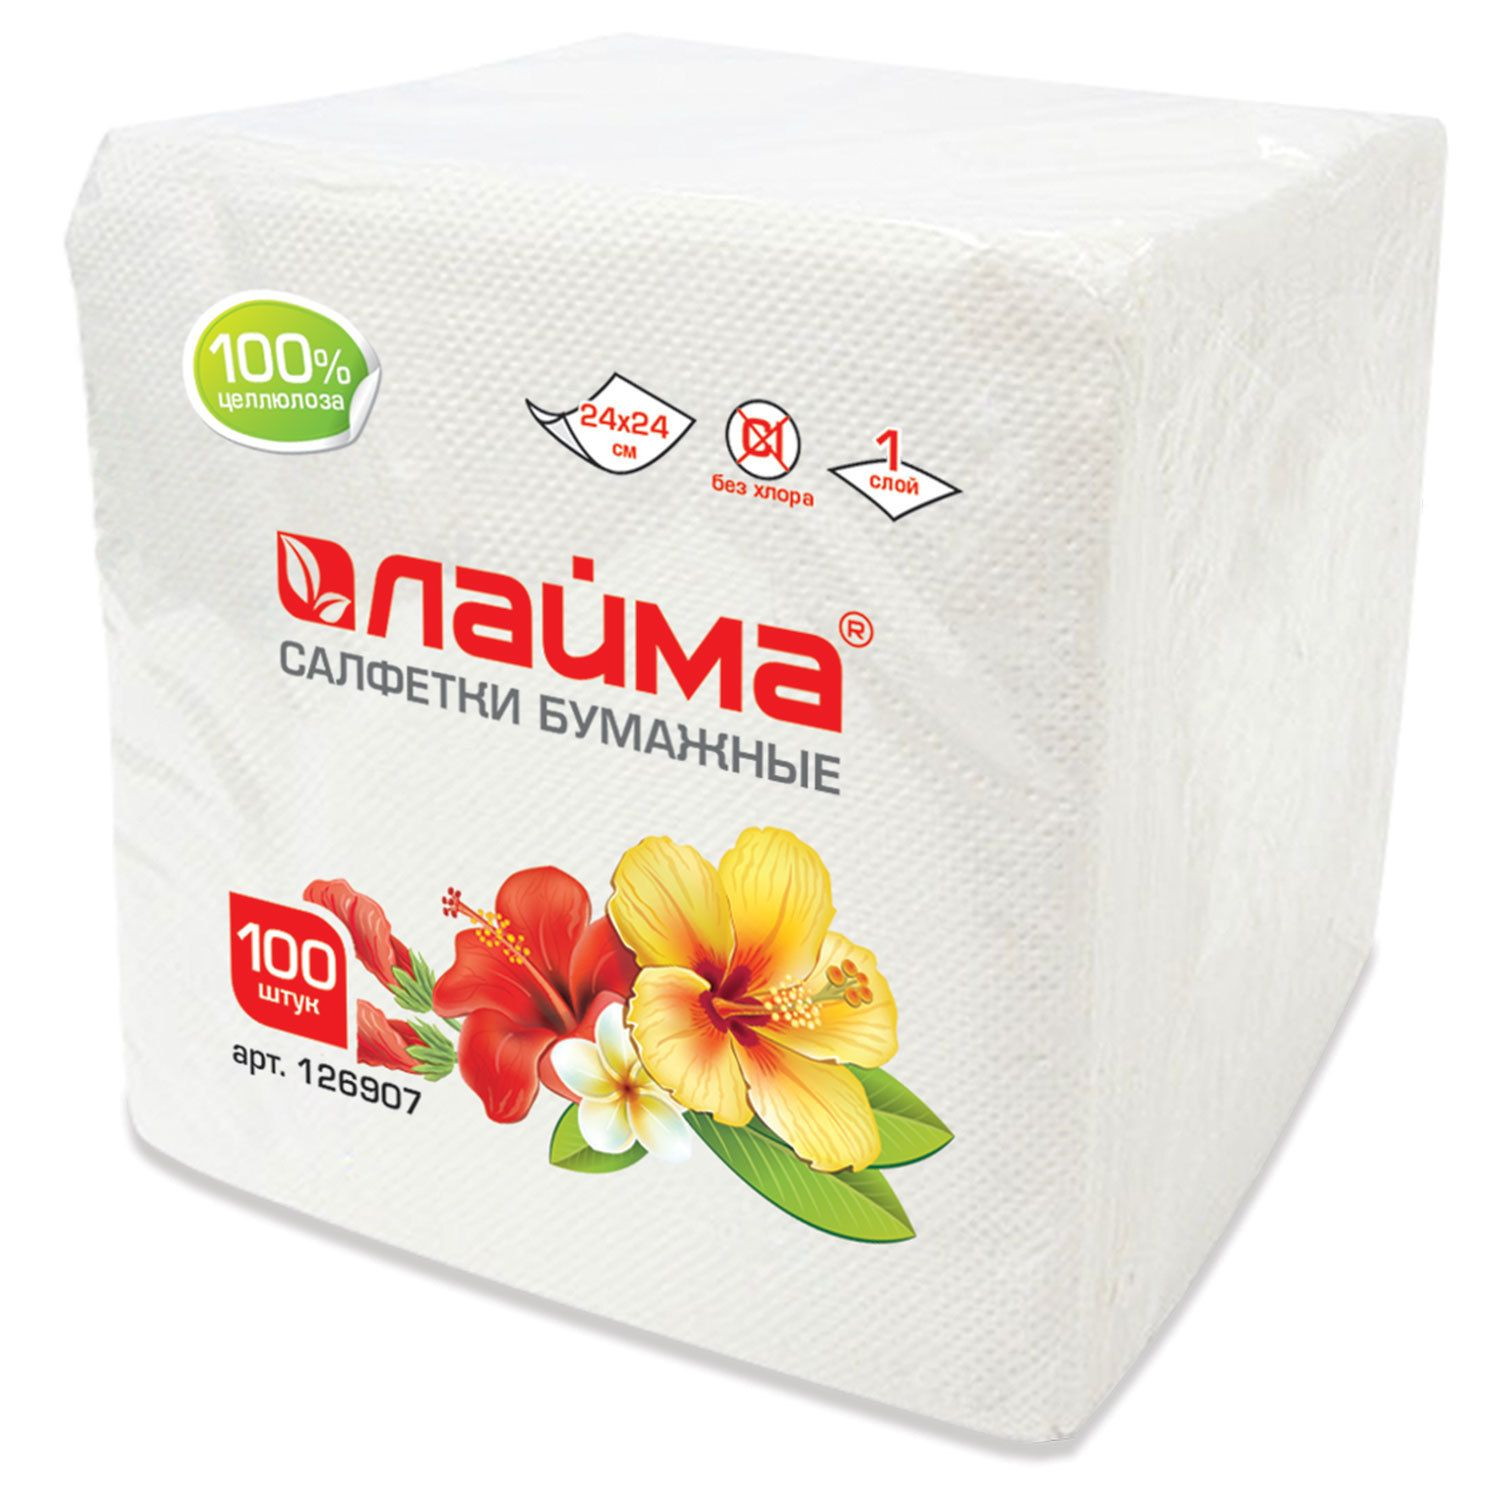 LIME / Paper napkins, 100 pcs., 24x24 cm, white, 100% cellulose